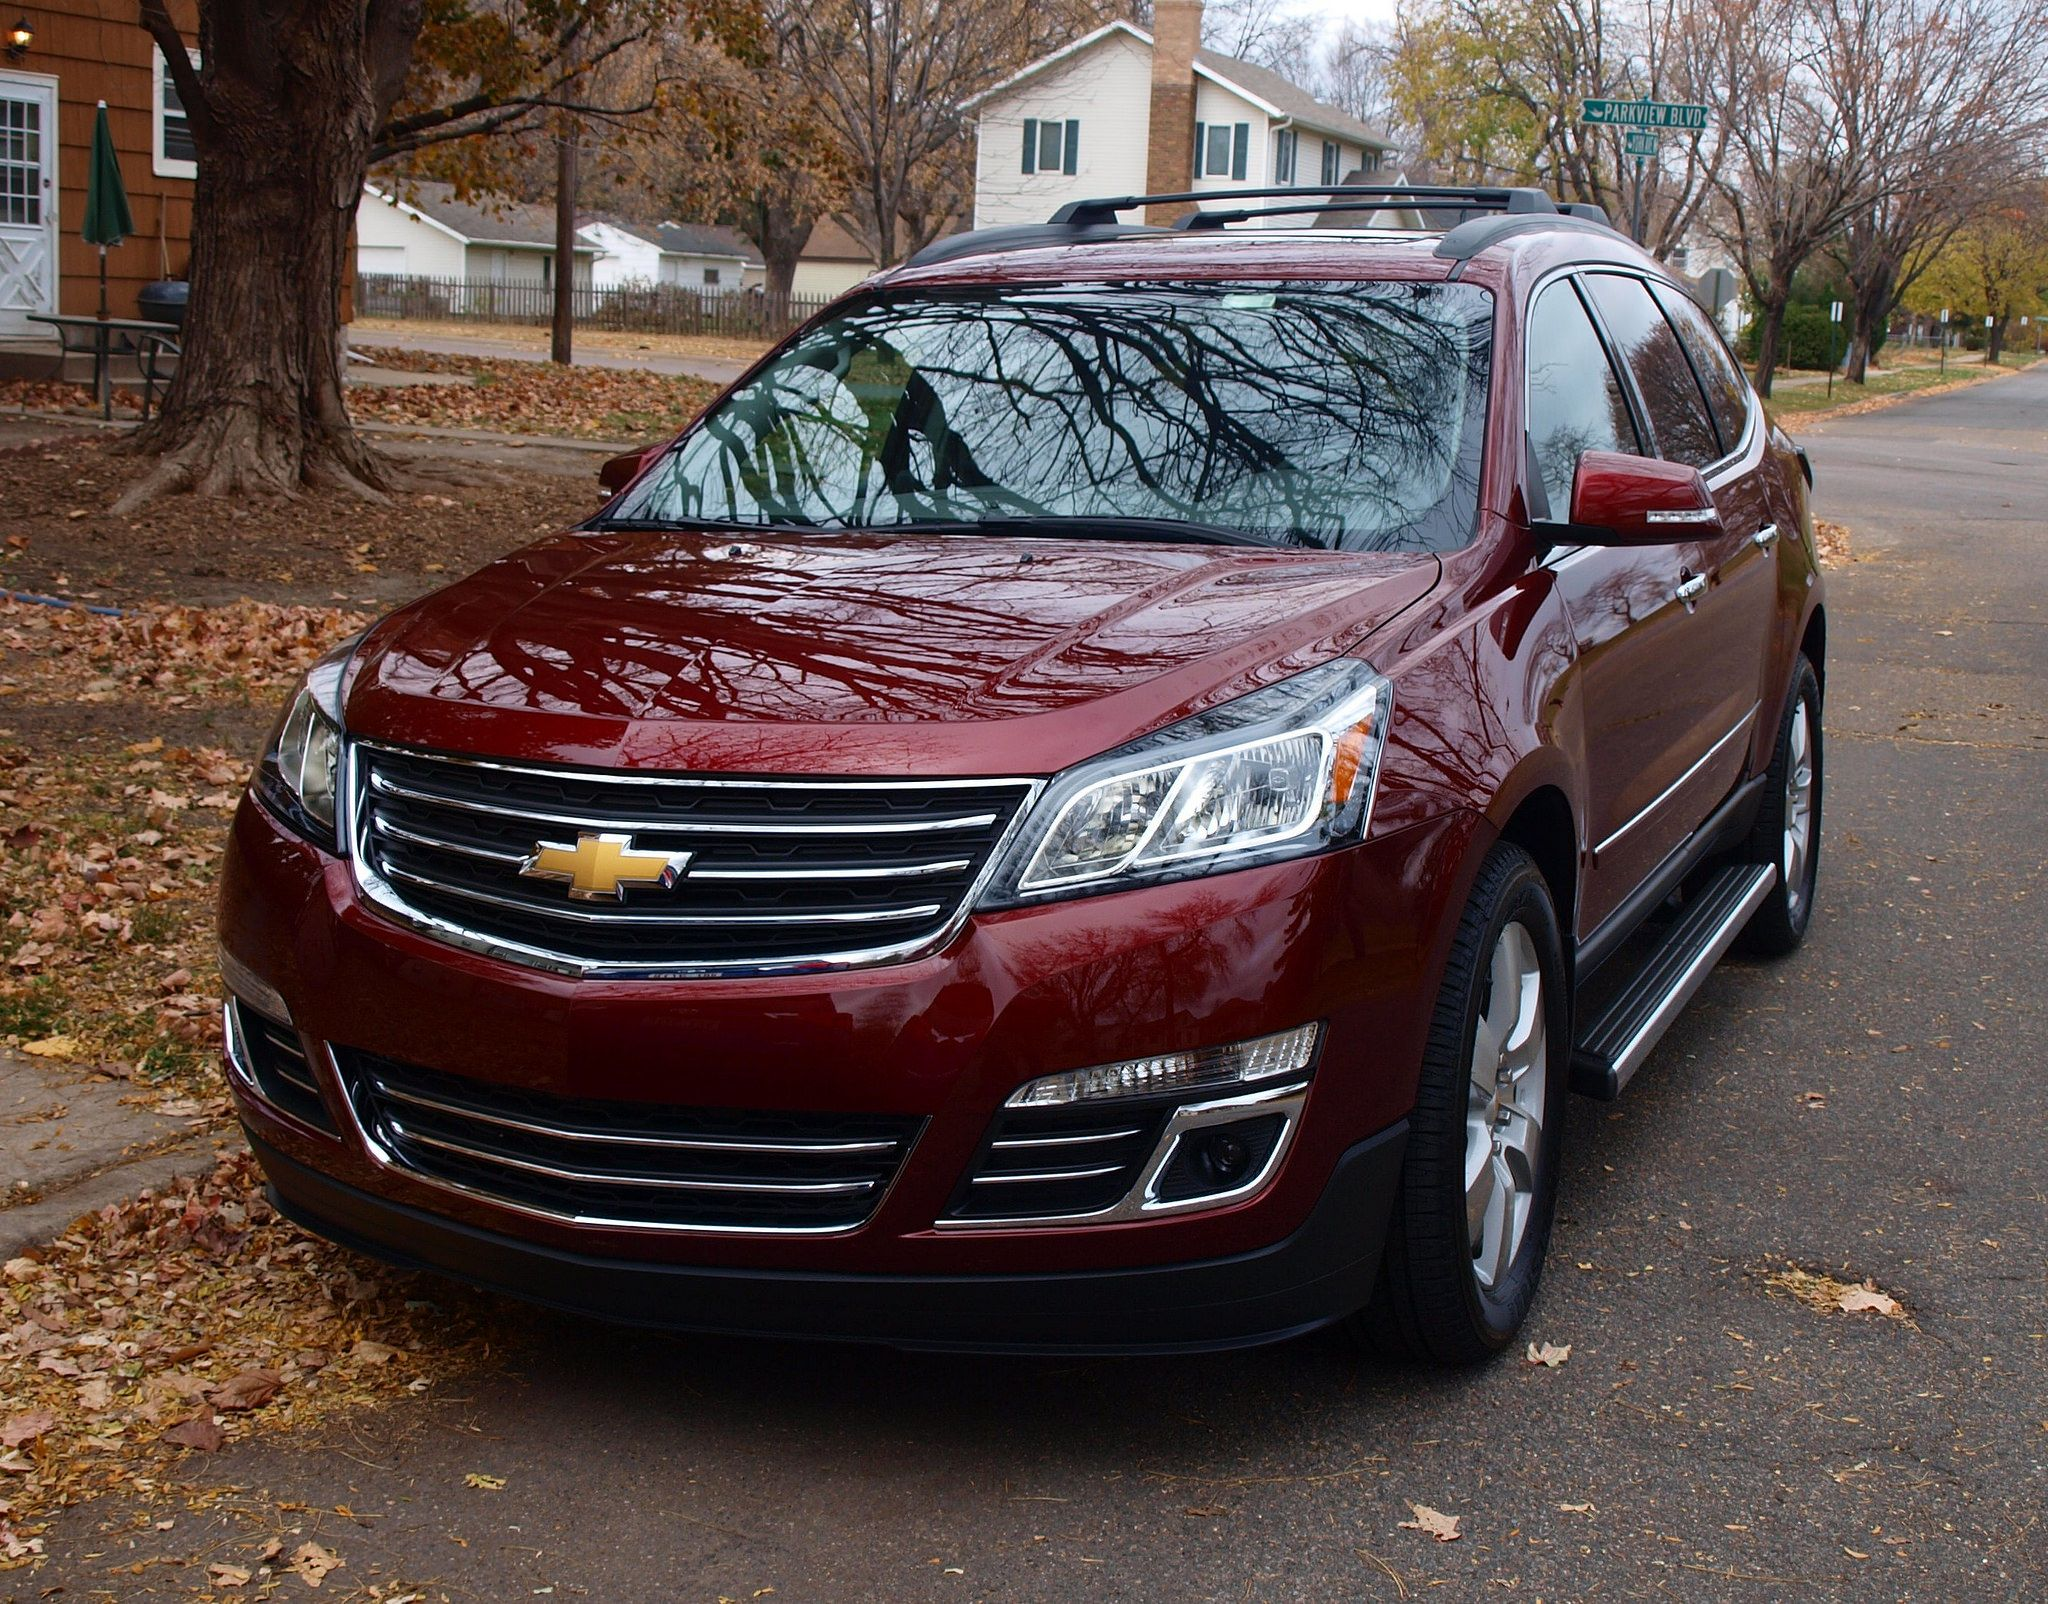 2017 Chevy Traverse Ltz Awd This Is My Dream Car For Family So That